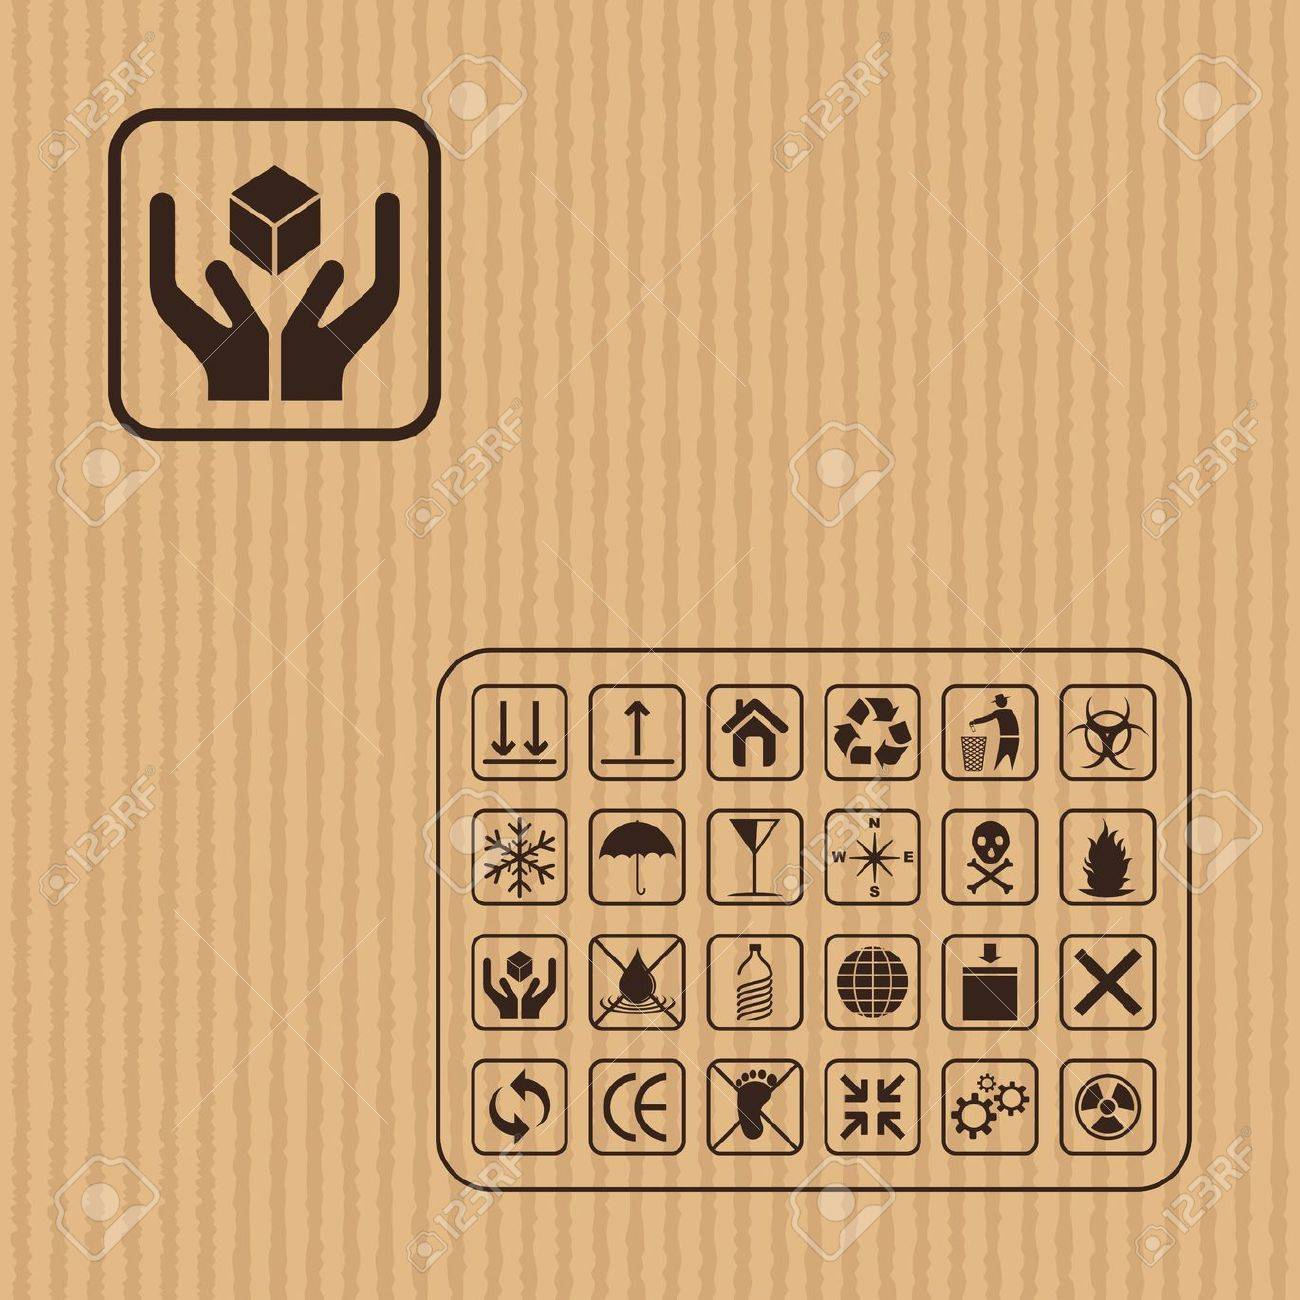 Cargo symbol on Cardboard texture Stock Vector - 18029366